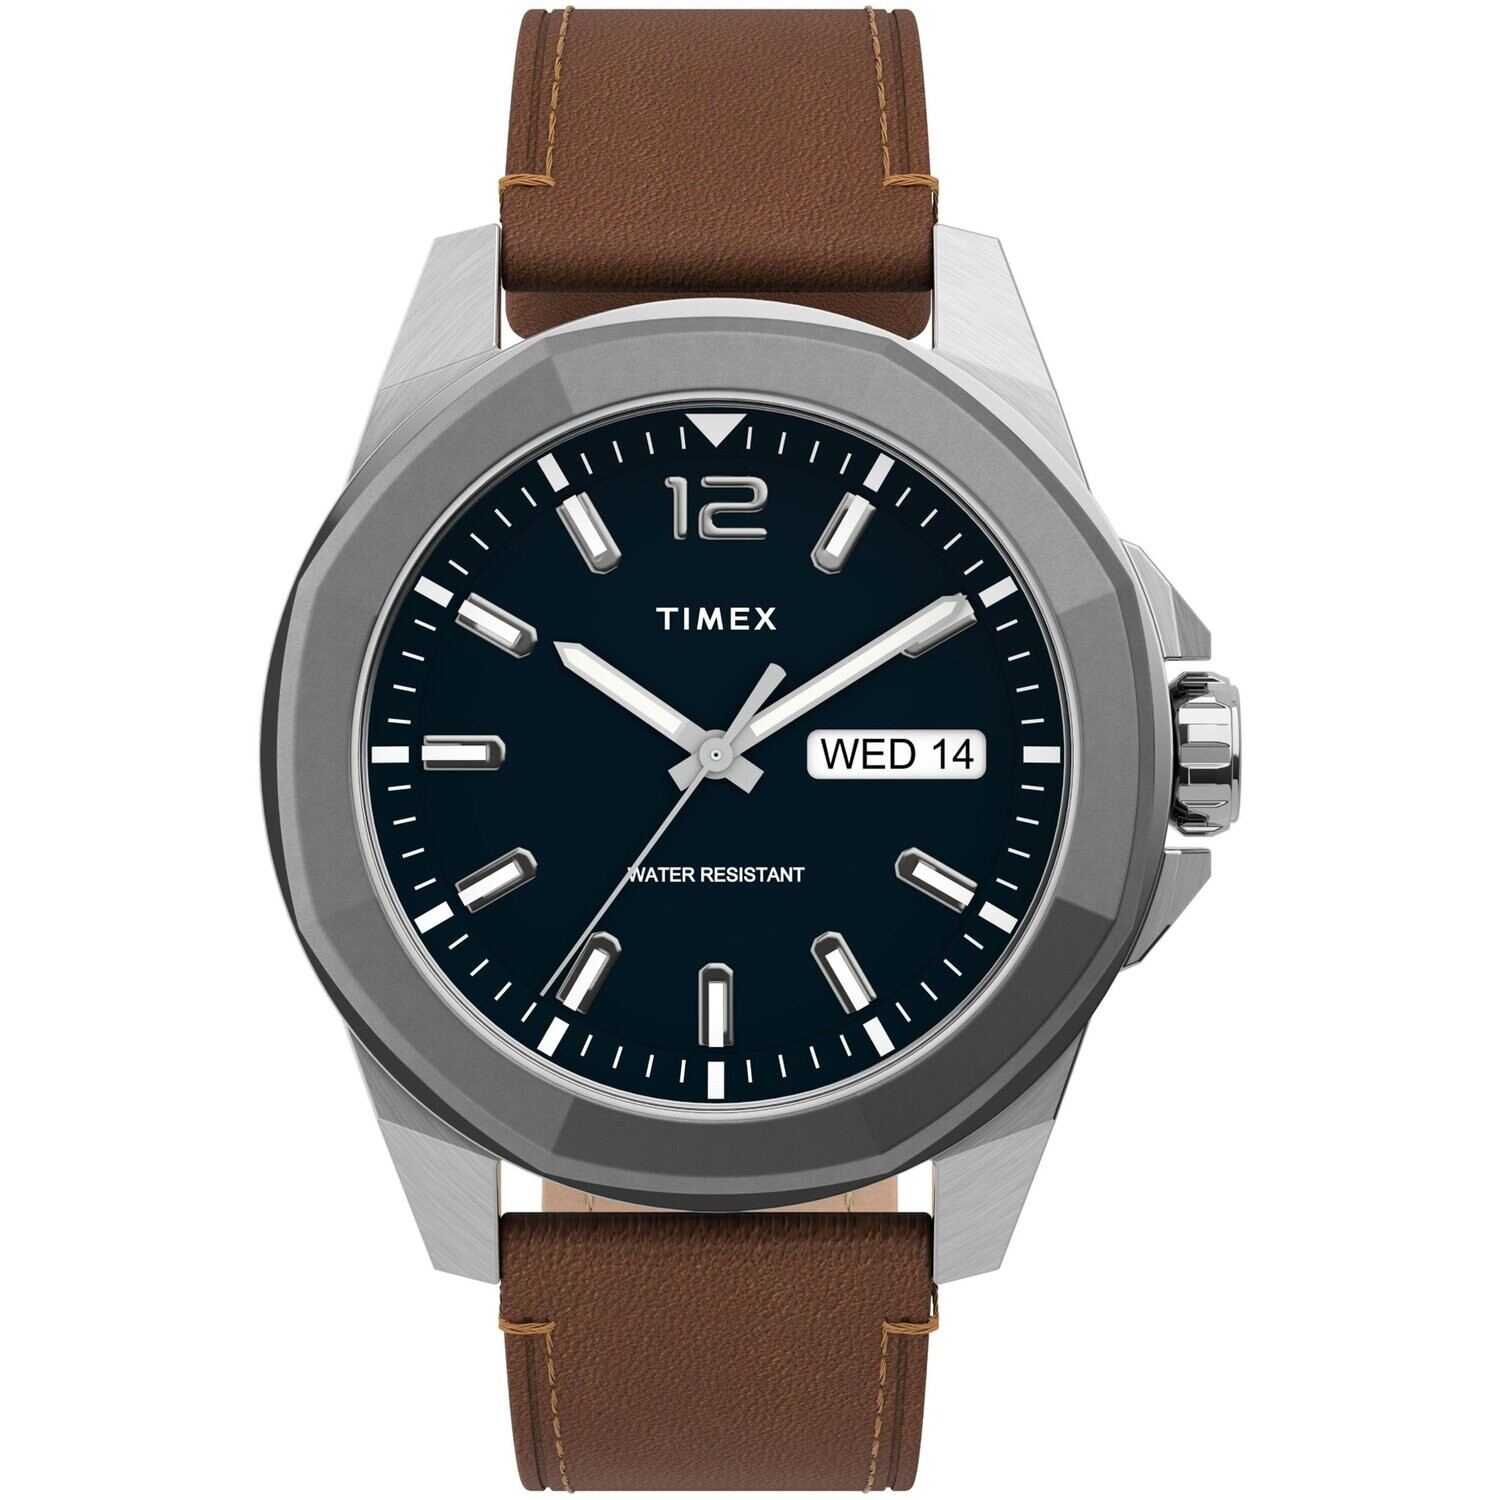 GNTS TIMEX WATCH SILVER TONE W/BLUE FACE